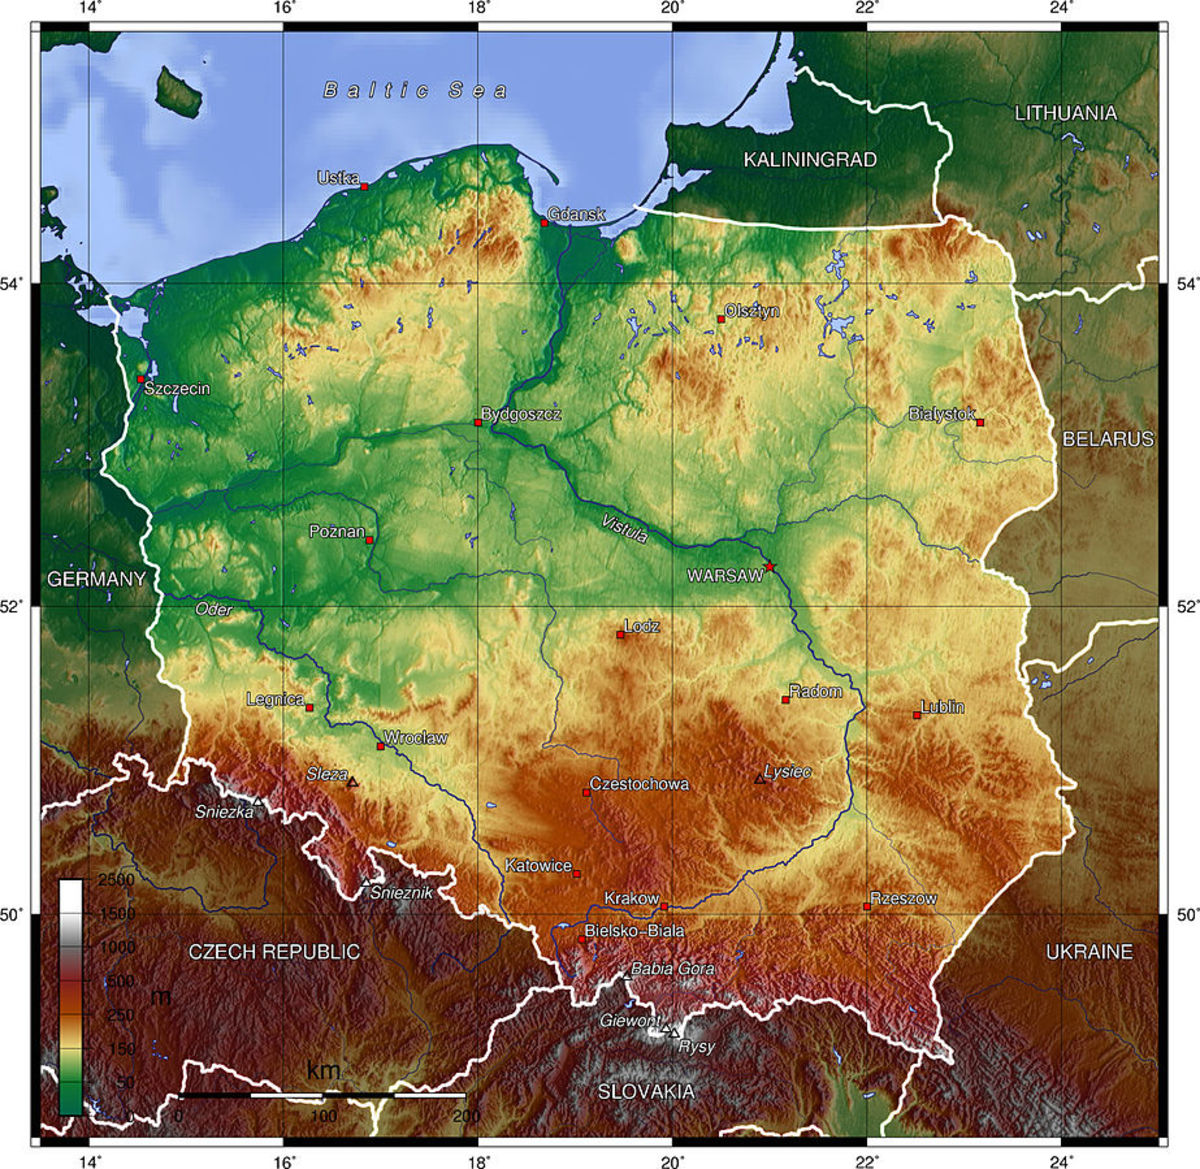 Topography of Poland: farm lands are green; golden-yellow areas are lowlands and marshes; and rust-colored areas are ridges and mountains.